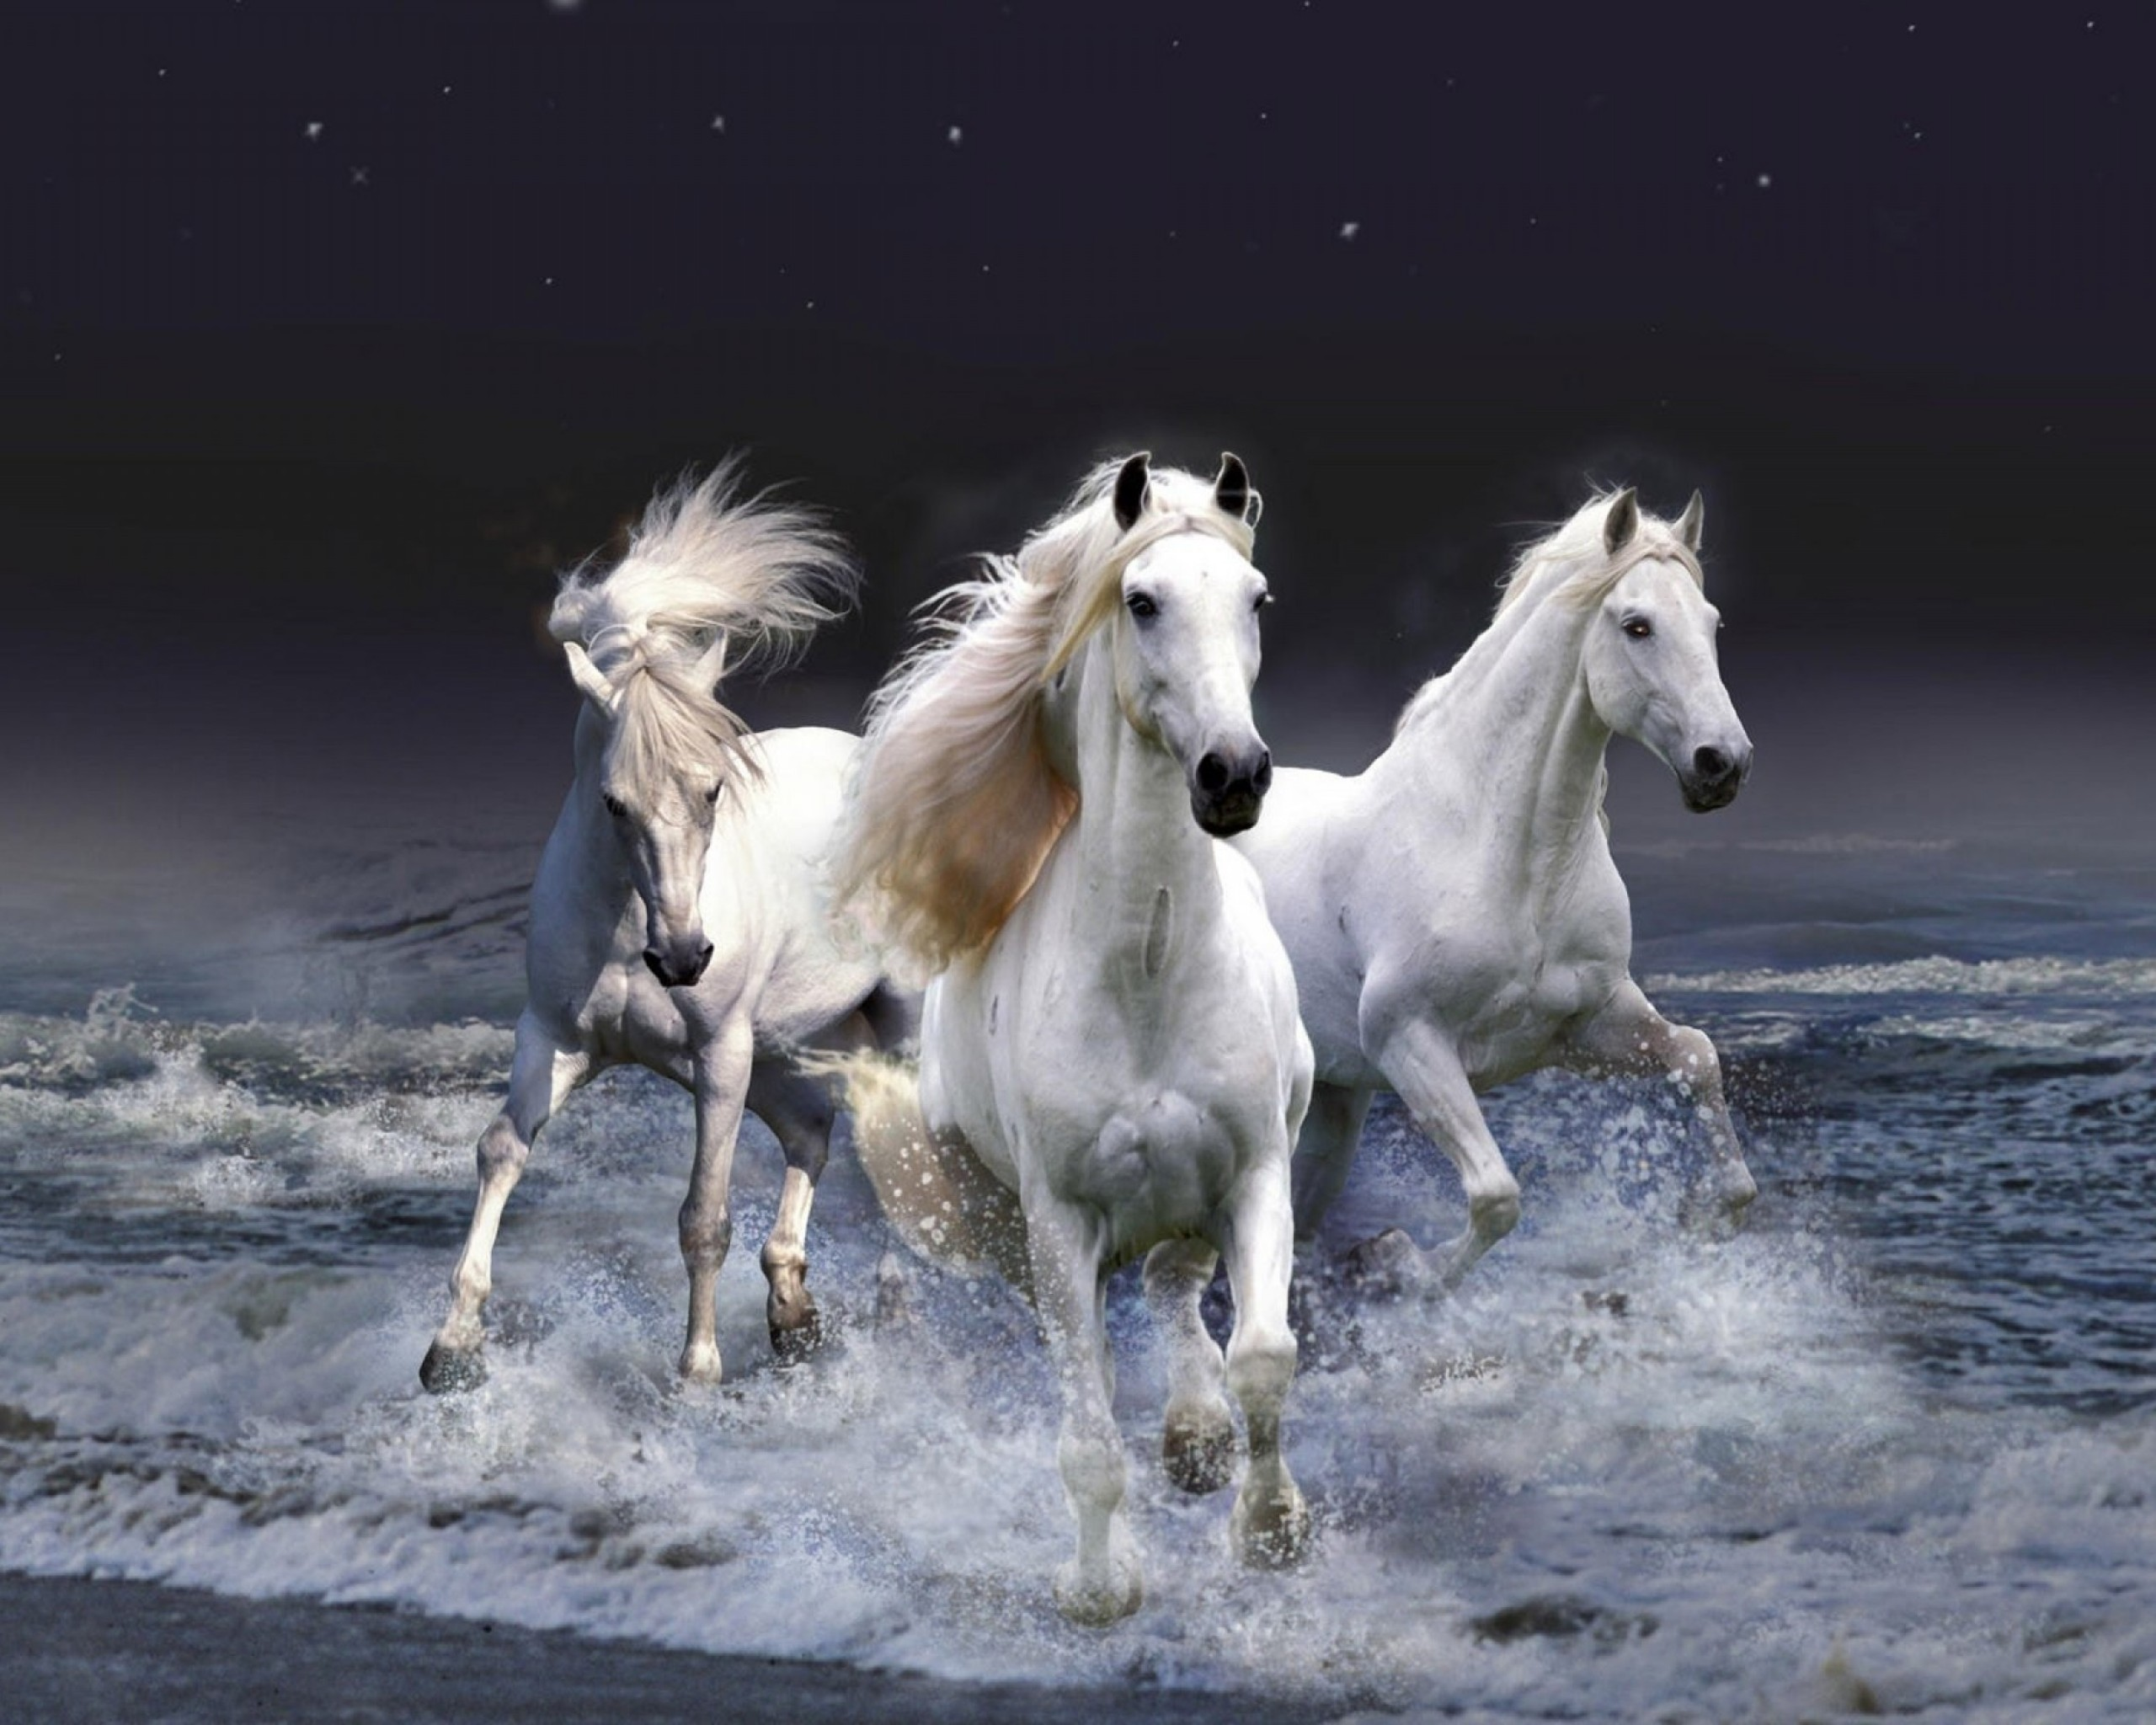 horses pictures A16